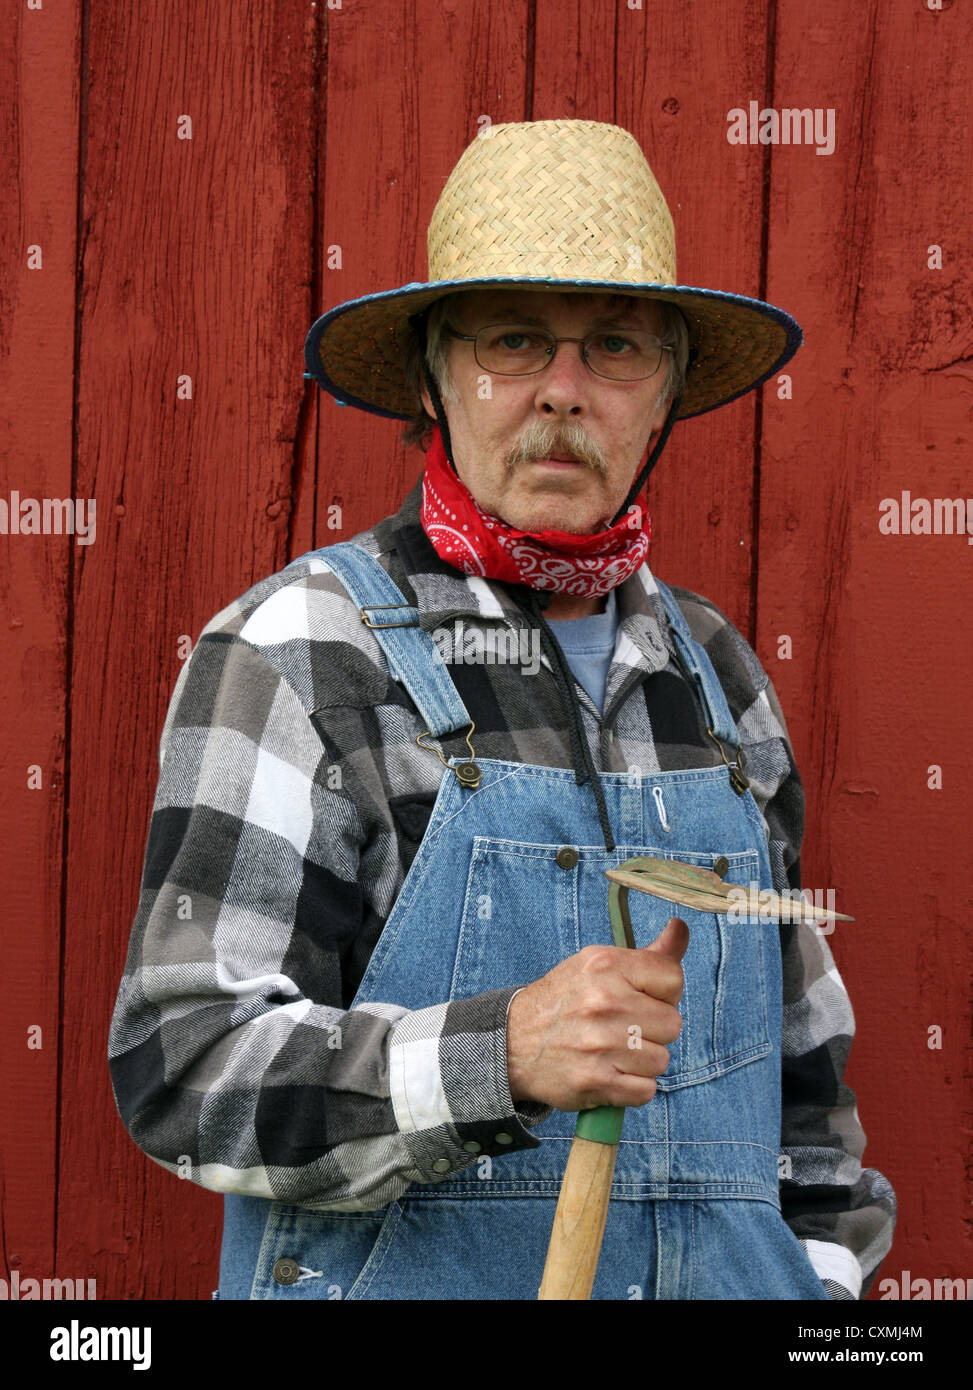 farmer holding a garden hoe wearing bib overalls with a barnboard background in vertical format - Stock Image